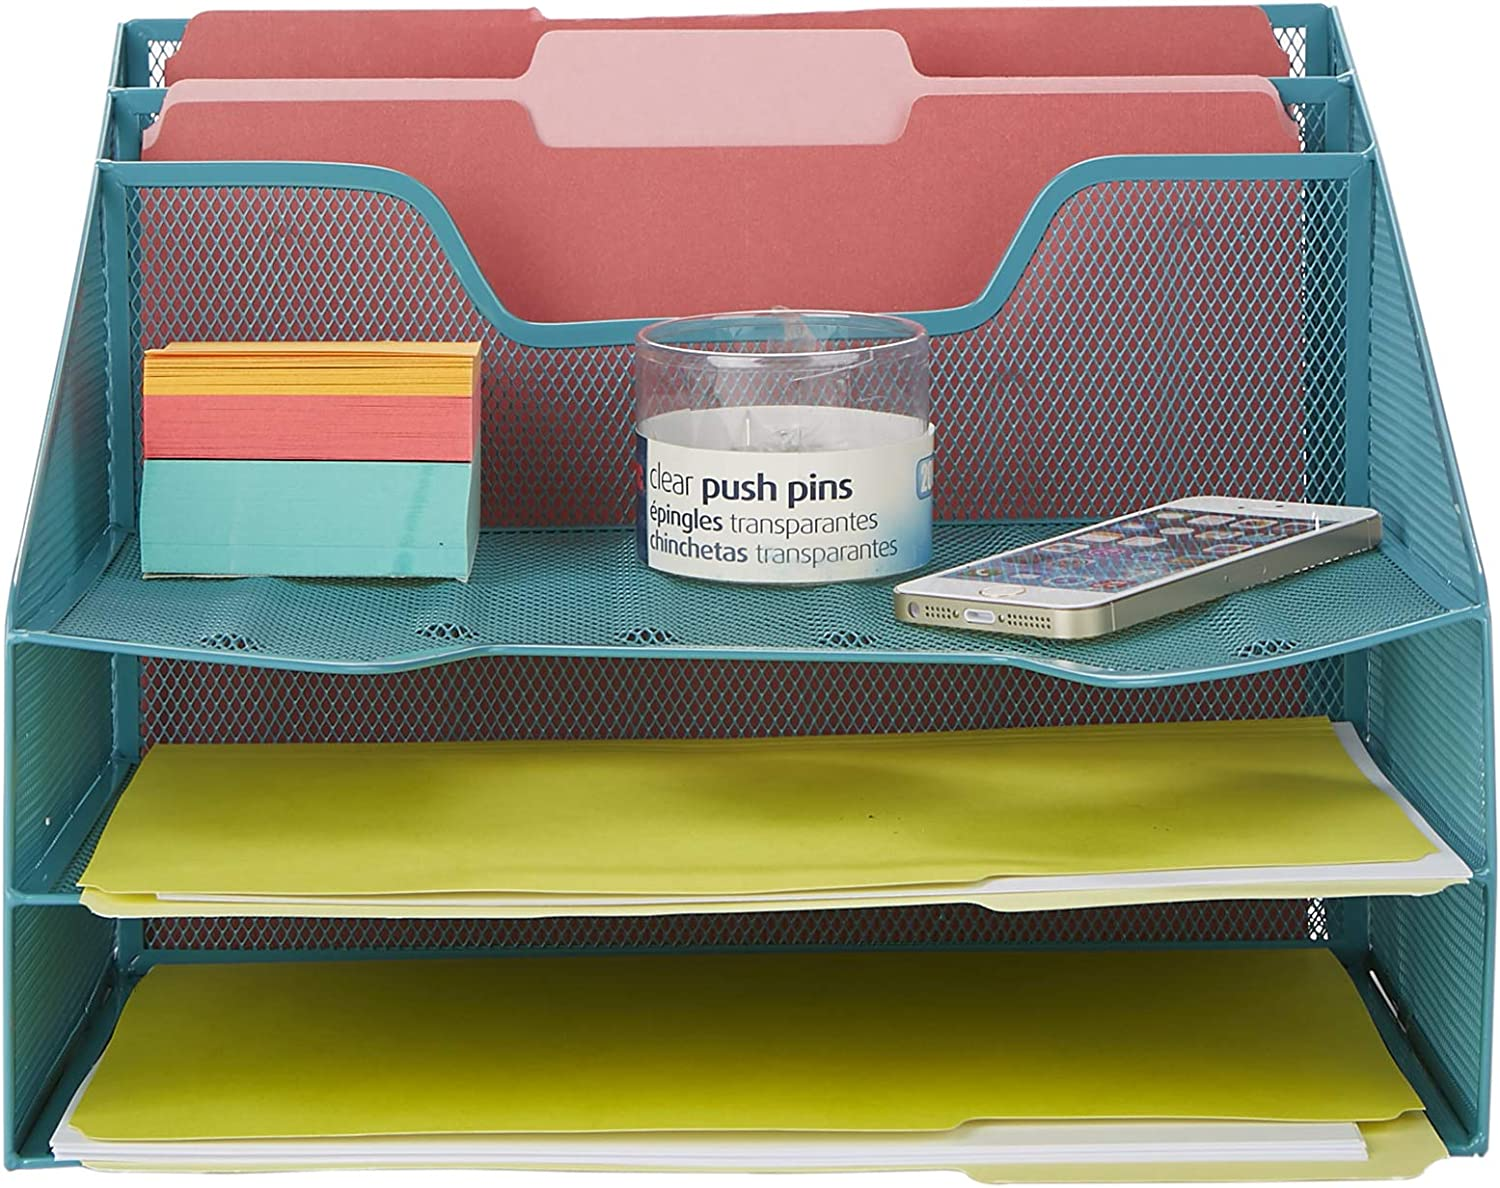 Mind Reader MESHBOX5-TUR Organizer 5 Desktop Document Letter Tray for Folders, Mail, Stationary, Desk Accessories, Turquoise